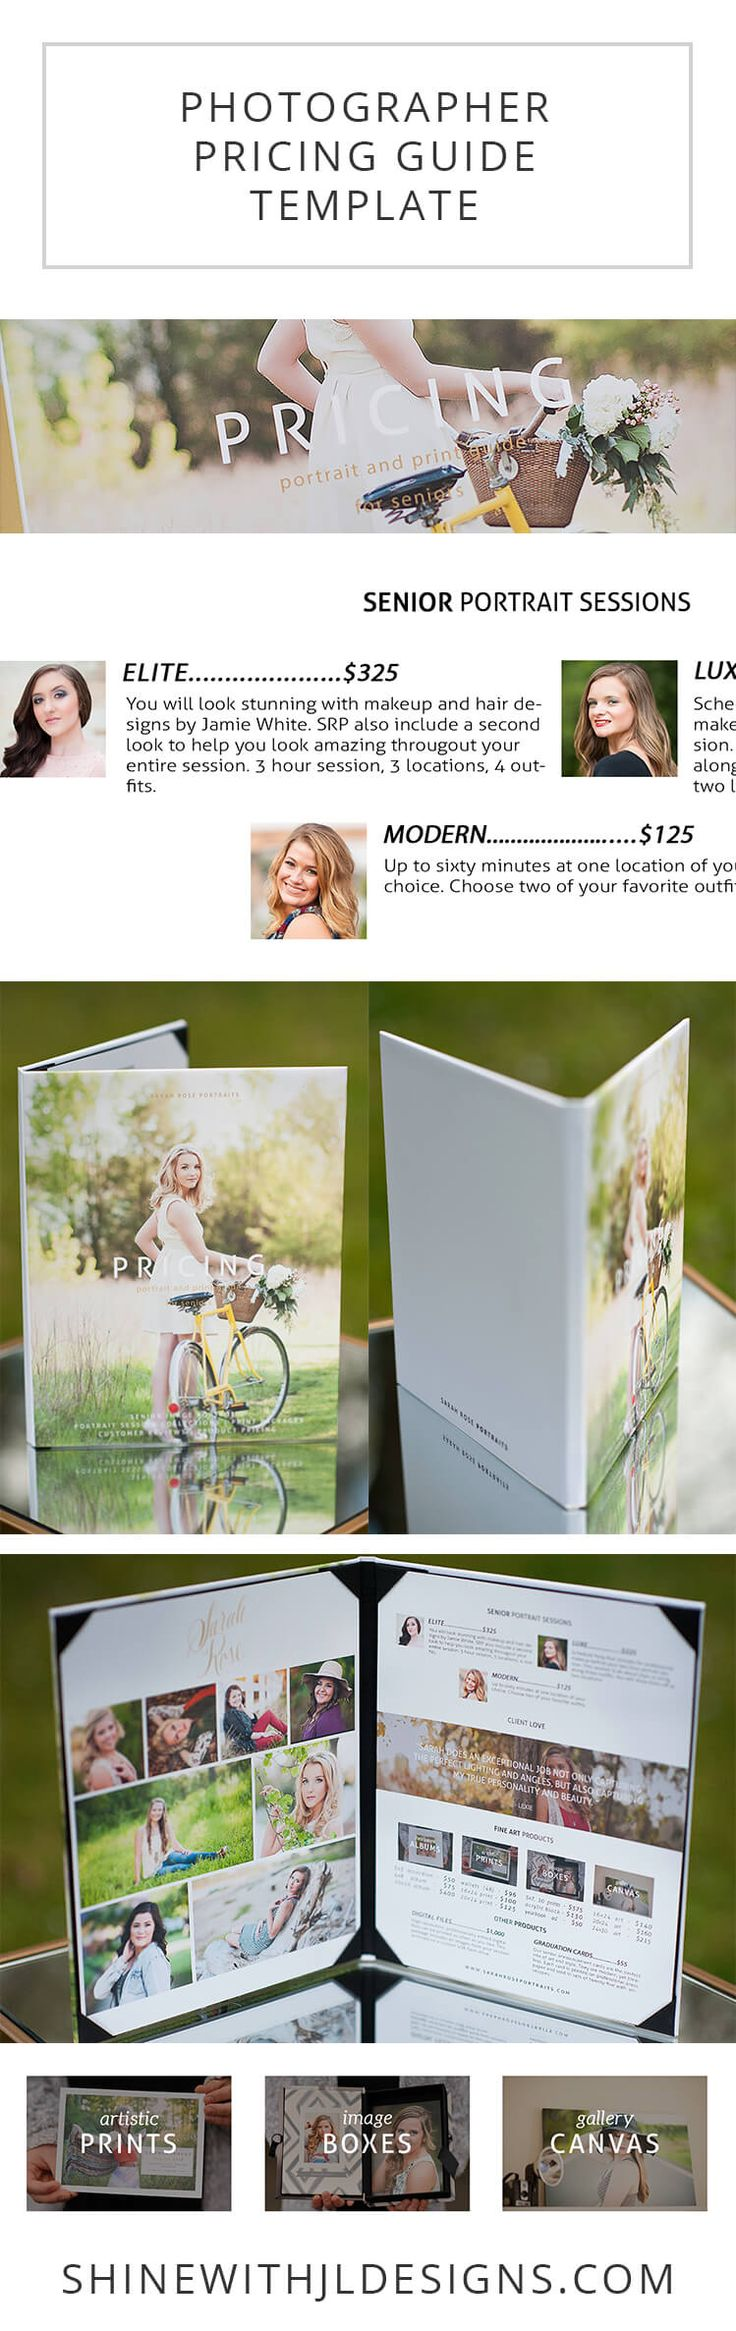 A simple, clean and educational price list template perfect for in-person sales meetings with your senior portrait and photography clients. Show off your portfolio professionally while helping your customers understand your portrait packages and print product pricing structure. Images by @sarahrosephoto